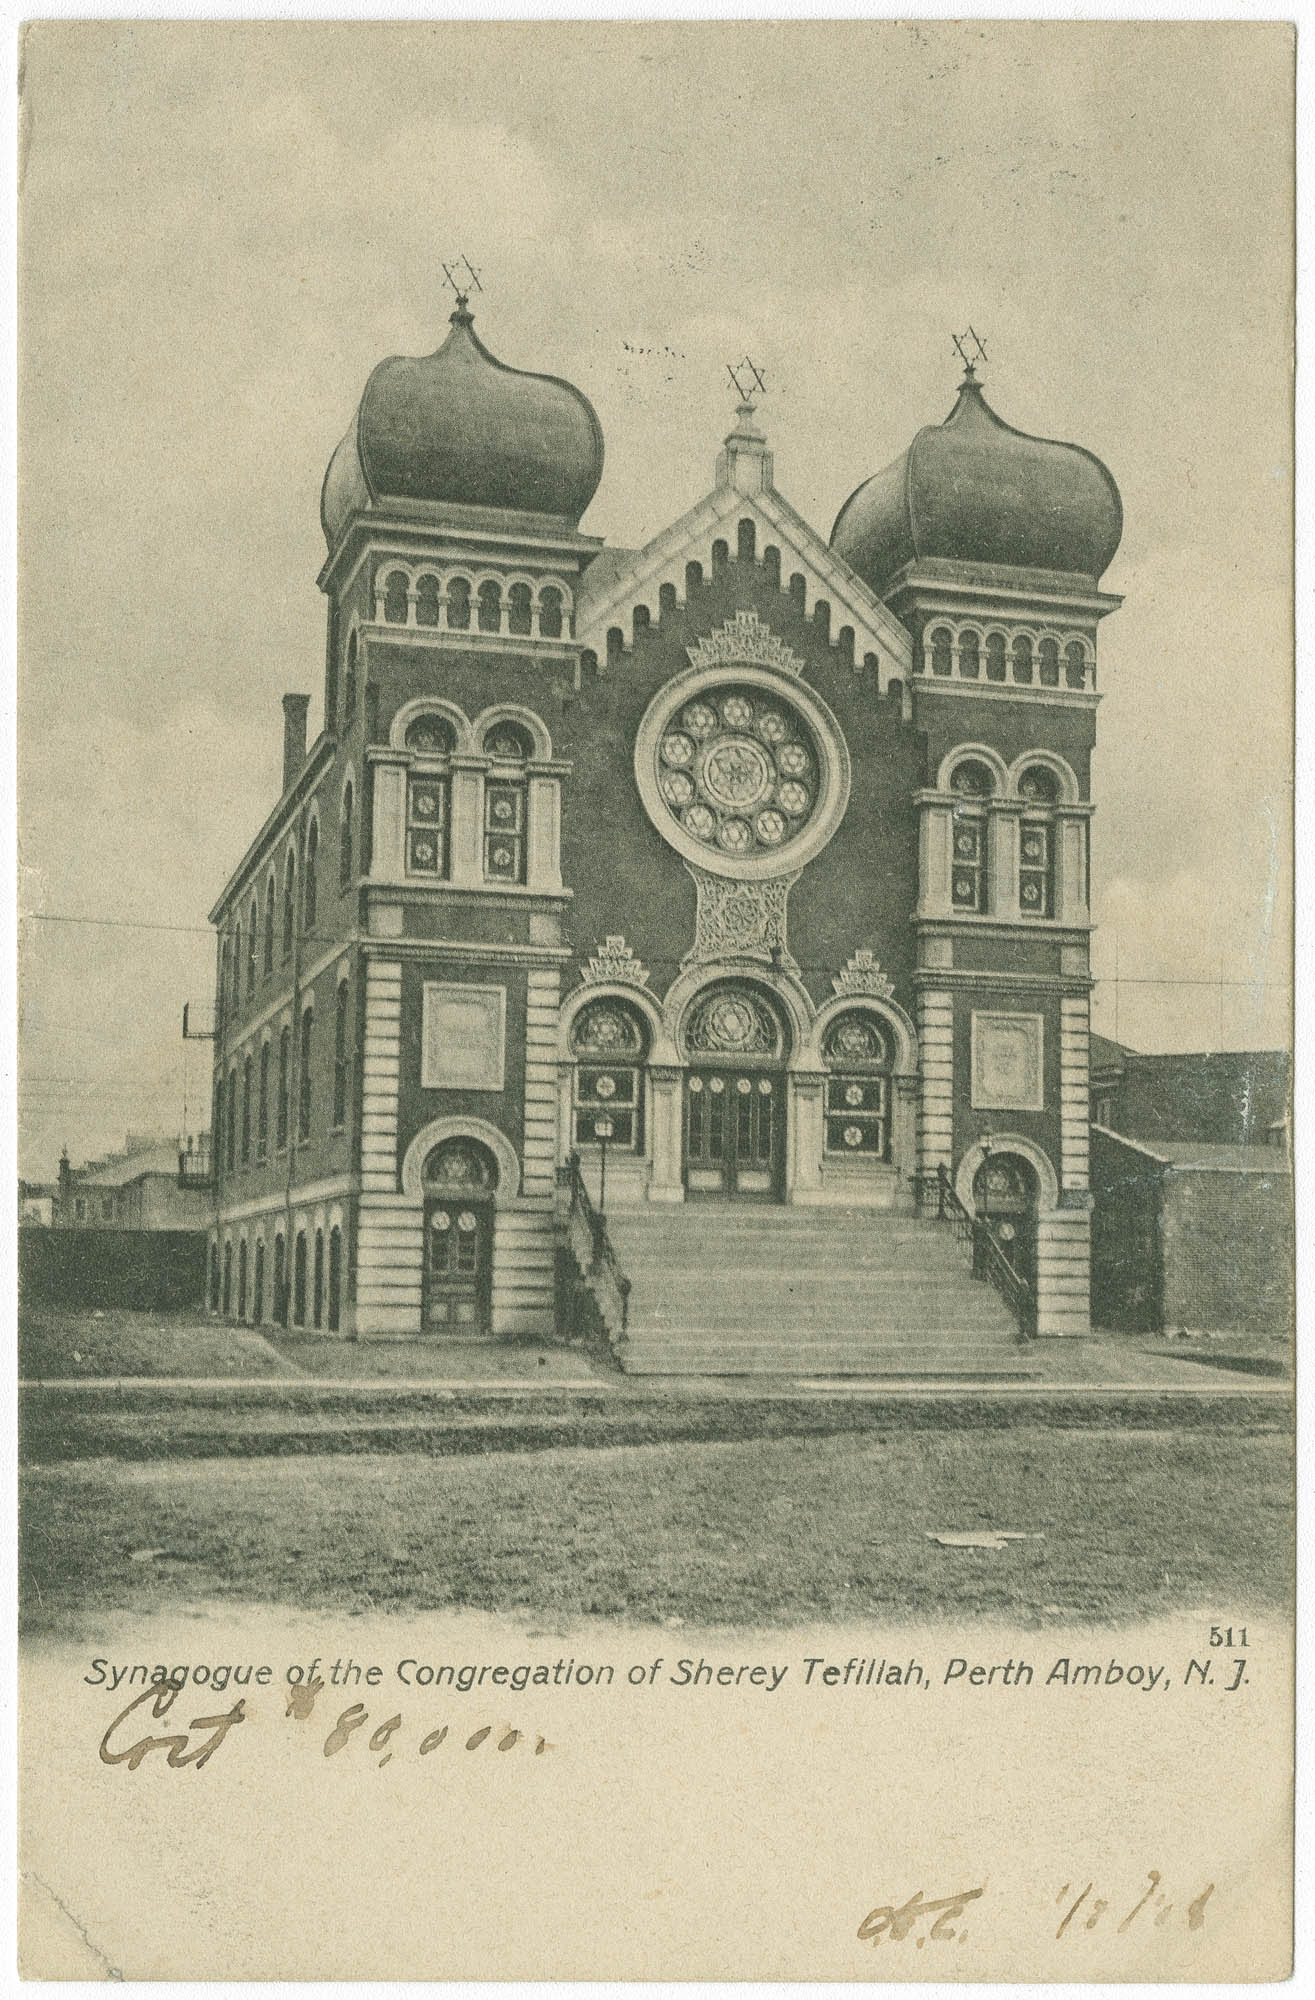 Synagogue of the Congregation of Sherey Tefillah, Perth Amboy, N.J.